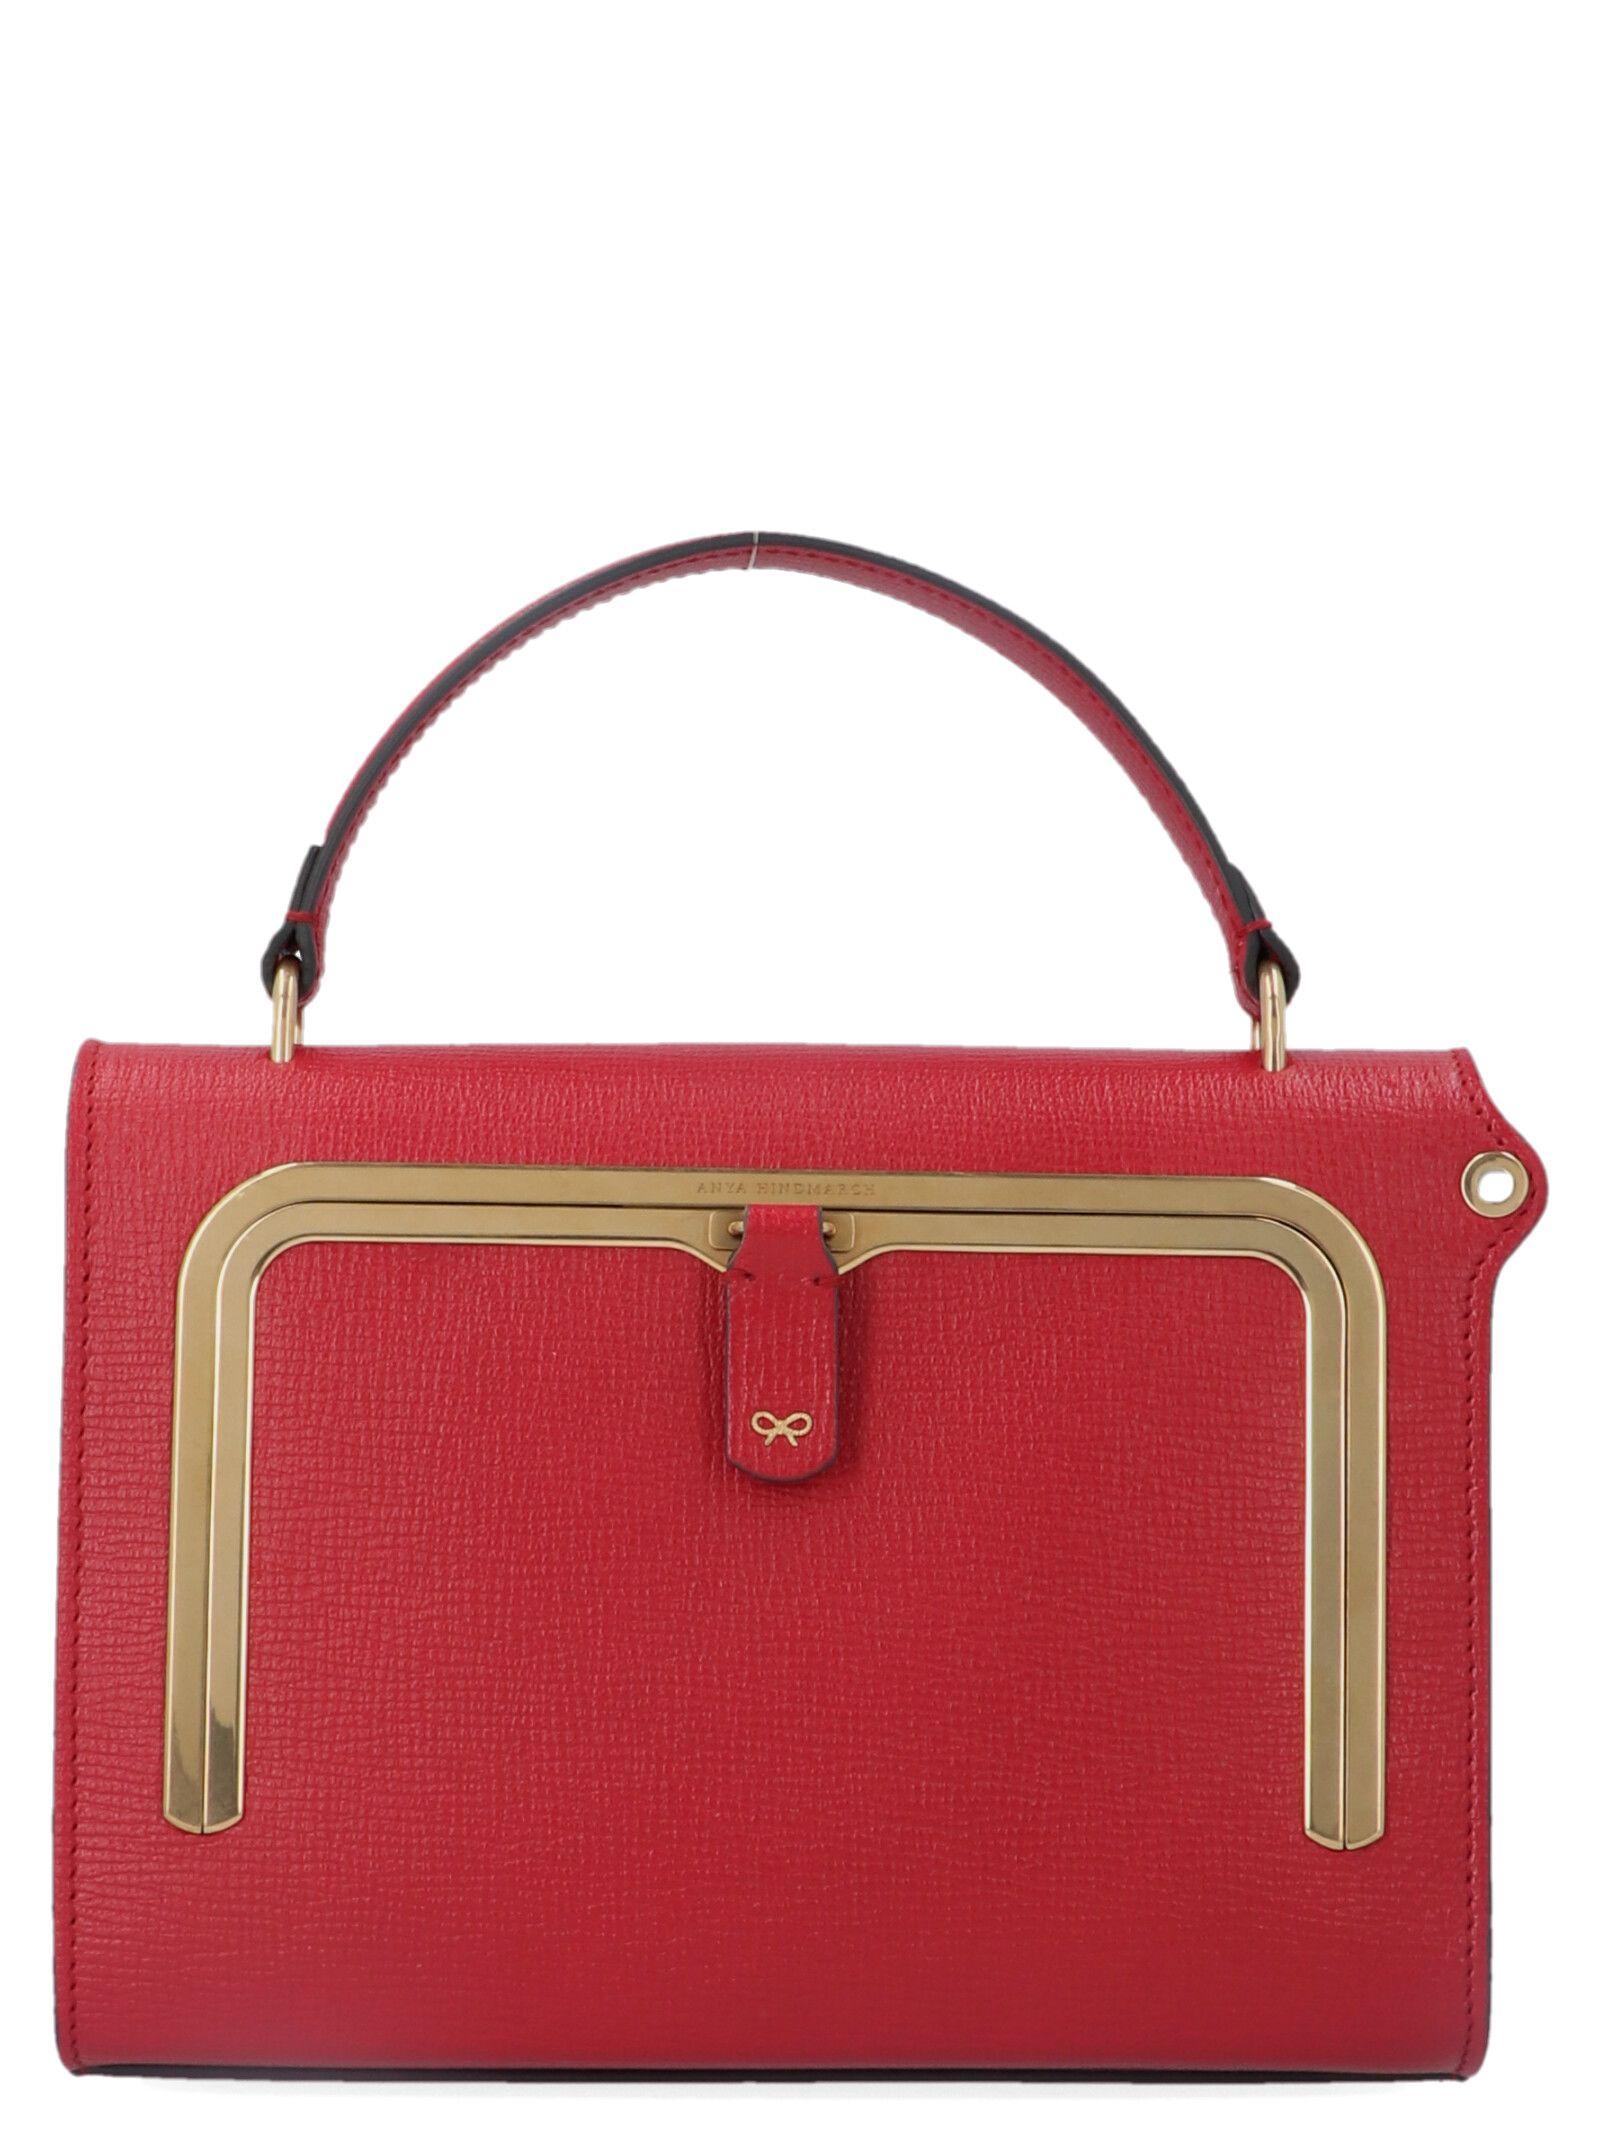 e9232012de Anya Hindmarch Anya Hindmarch 'postbox' Bag - Burgundy - 10982314 ...